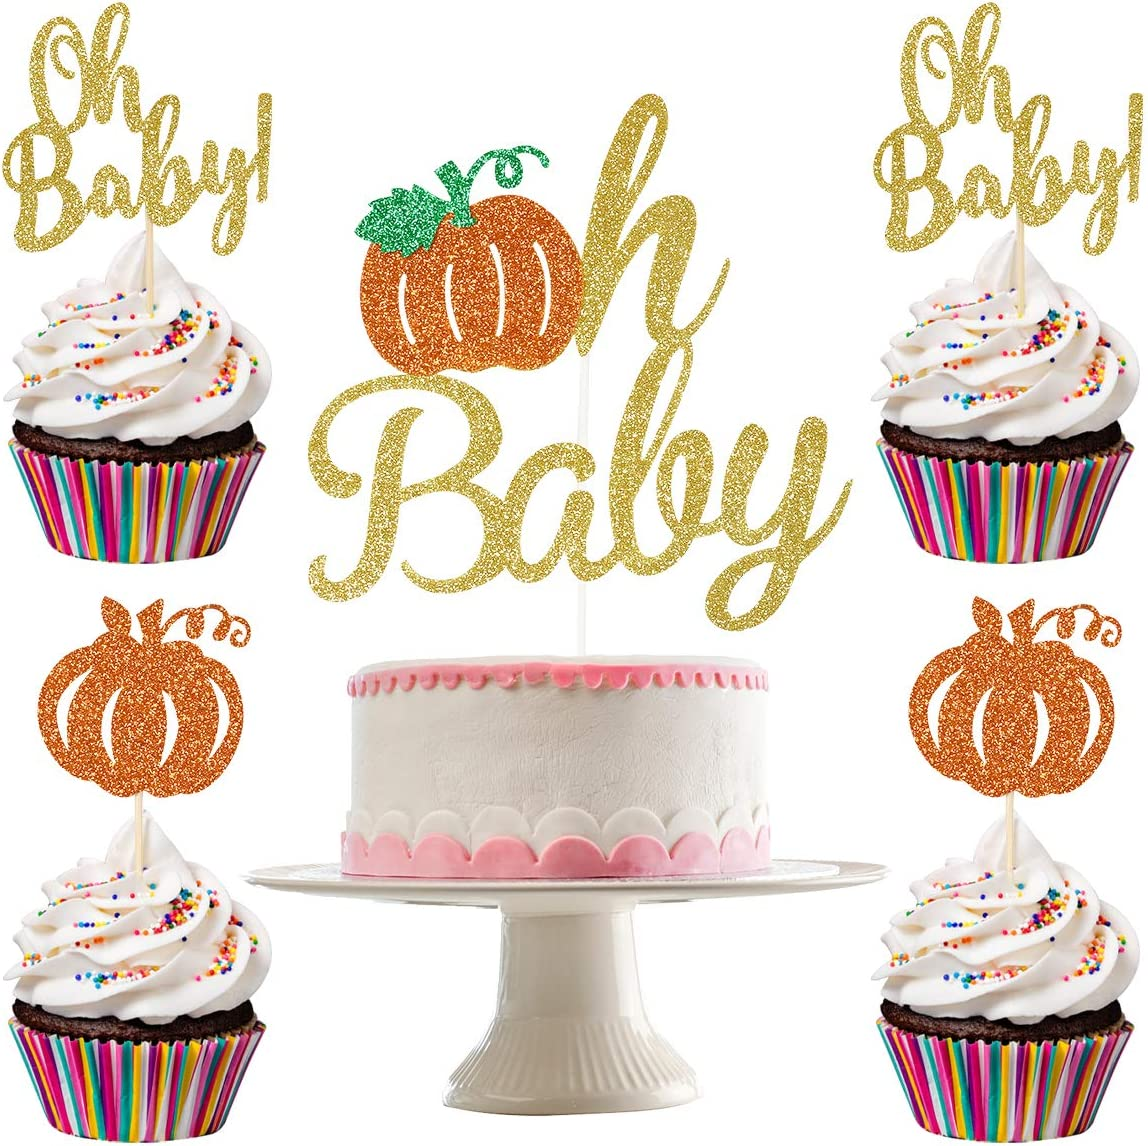 Gold Glittery Pumpkin Oh Baby Cake Topper and 24Pcs Glittery Pumpkin Oh Baby Cupcake Topper- Pumpkin Theme Baby Shower Party Decorations,Fall Baby Shower Party Cake Decor,Gender Reveal Cake Decorations